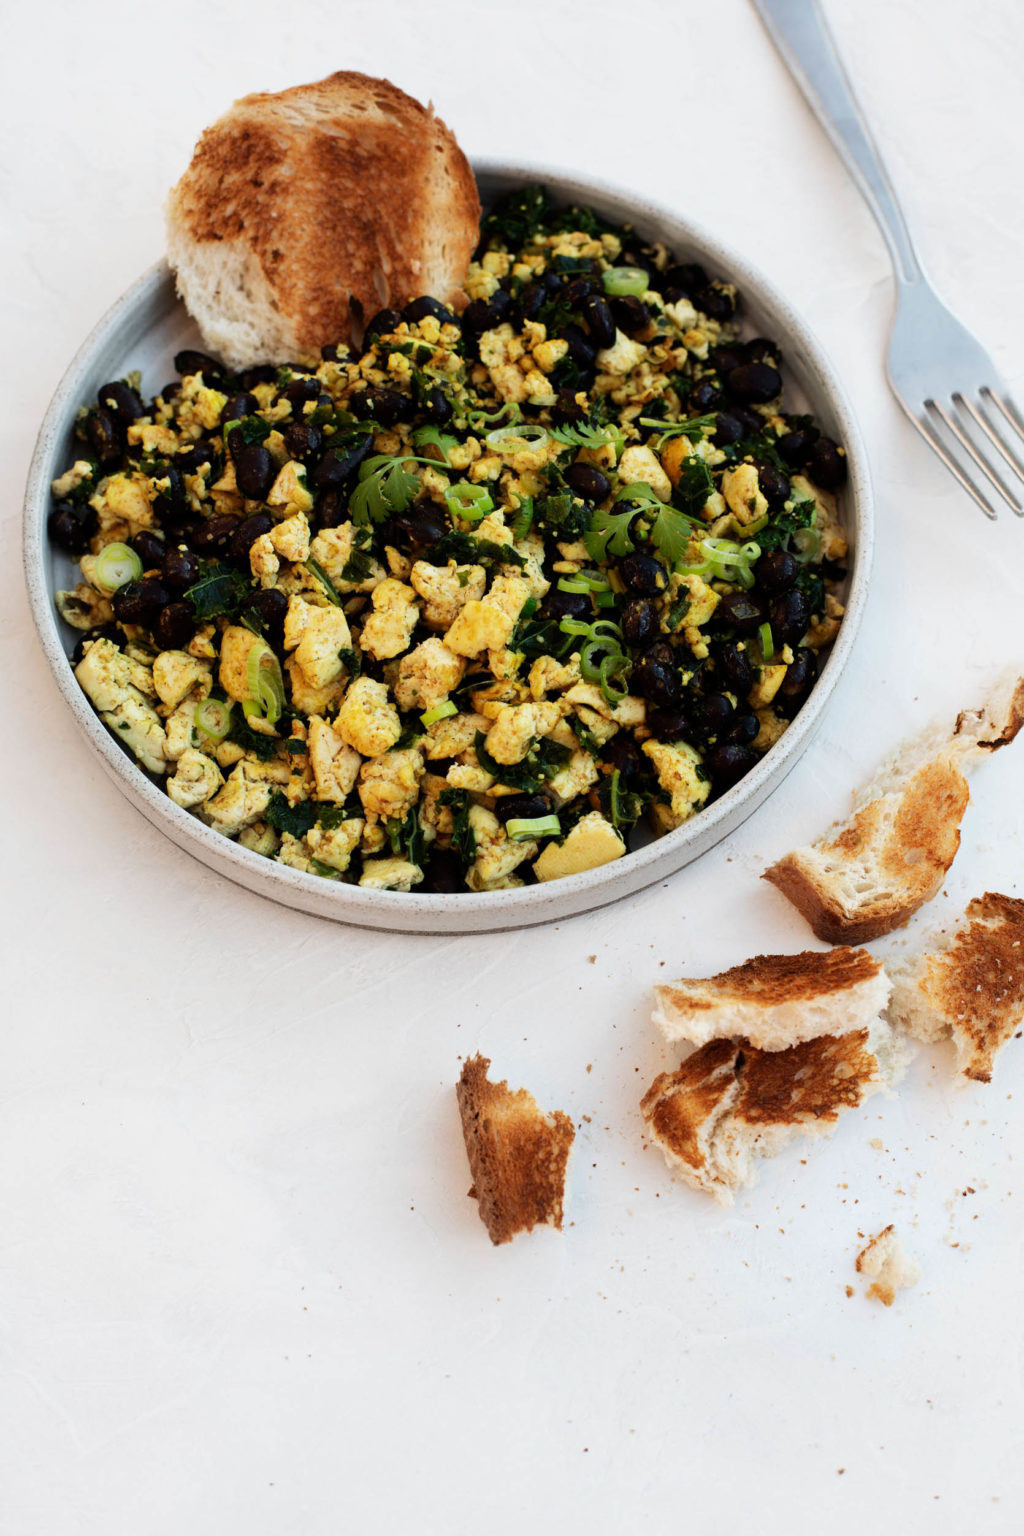 A savory plant based breakfast, made with black beans and crumbled tofu, is served on a round plate with small pieces of toast.